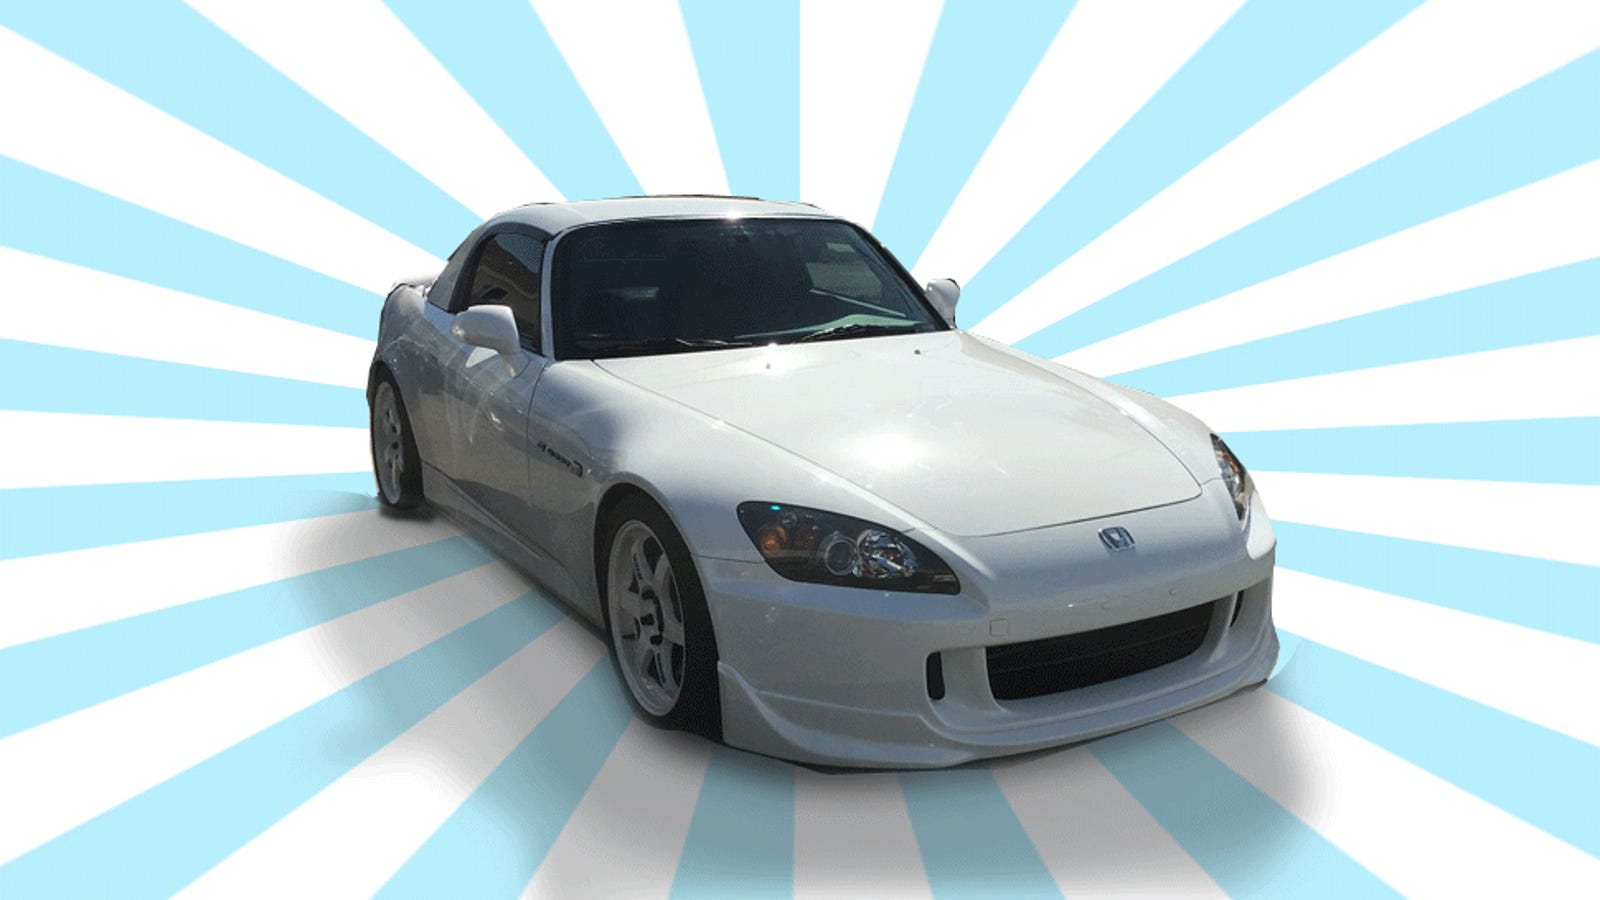 Get Furious Over This Craigslist Honda S2000 Bait-And-Switch